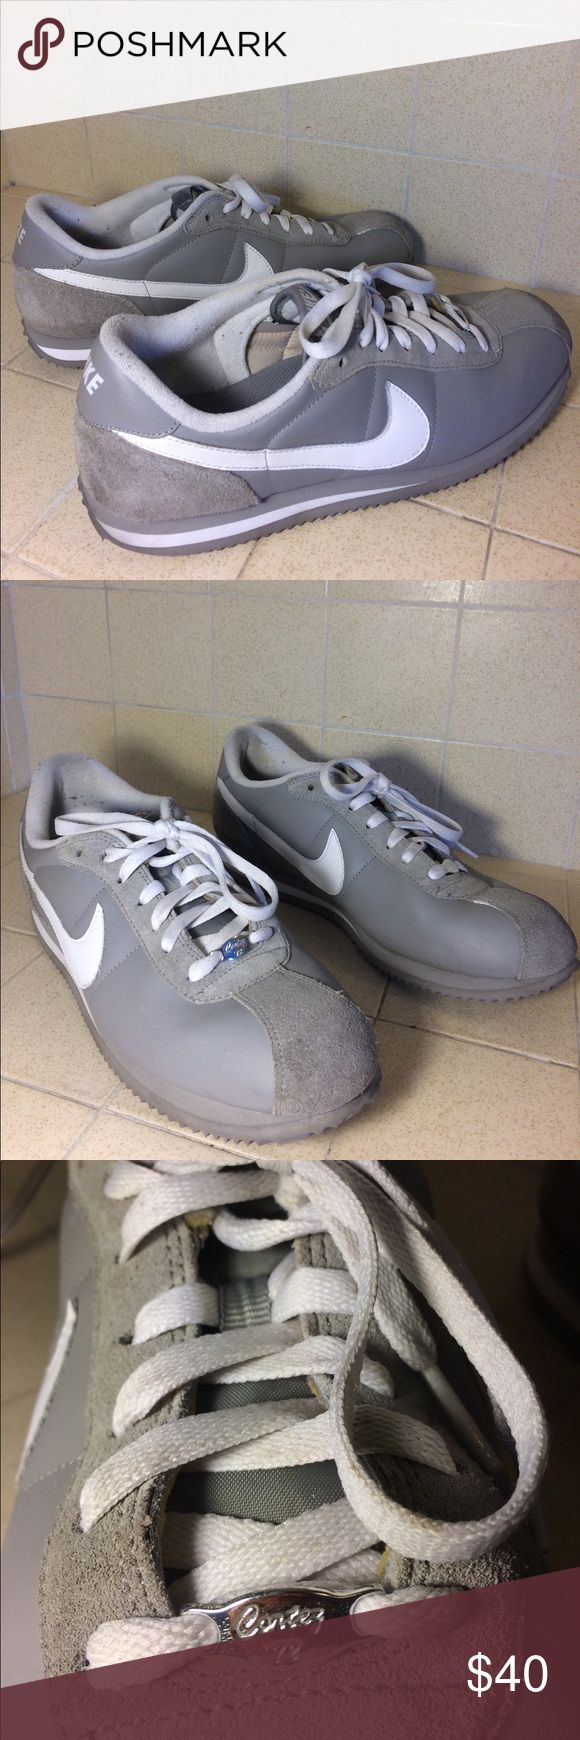 Nike cortez 72 shoes In great condition look new no flaws in rare grey leather Nike Shoes